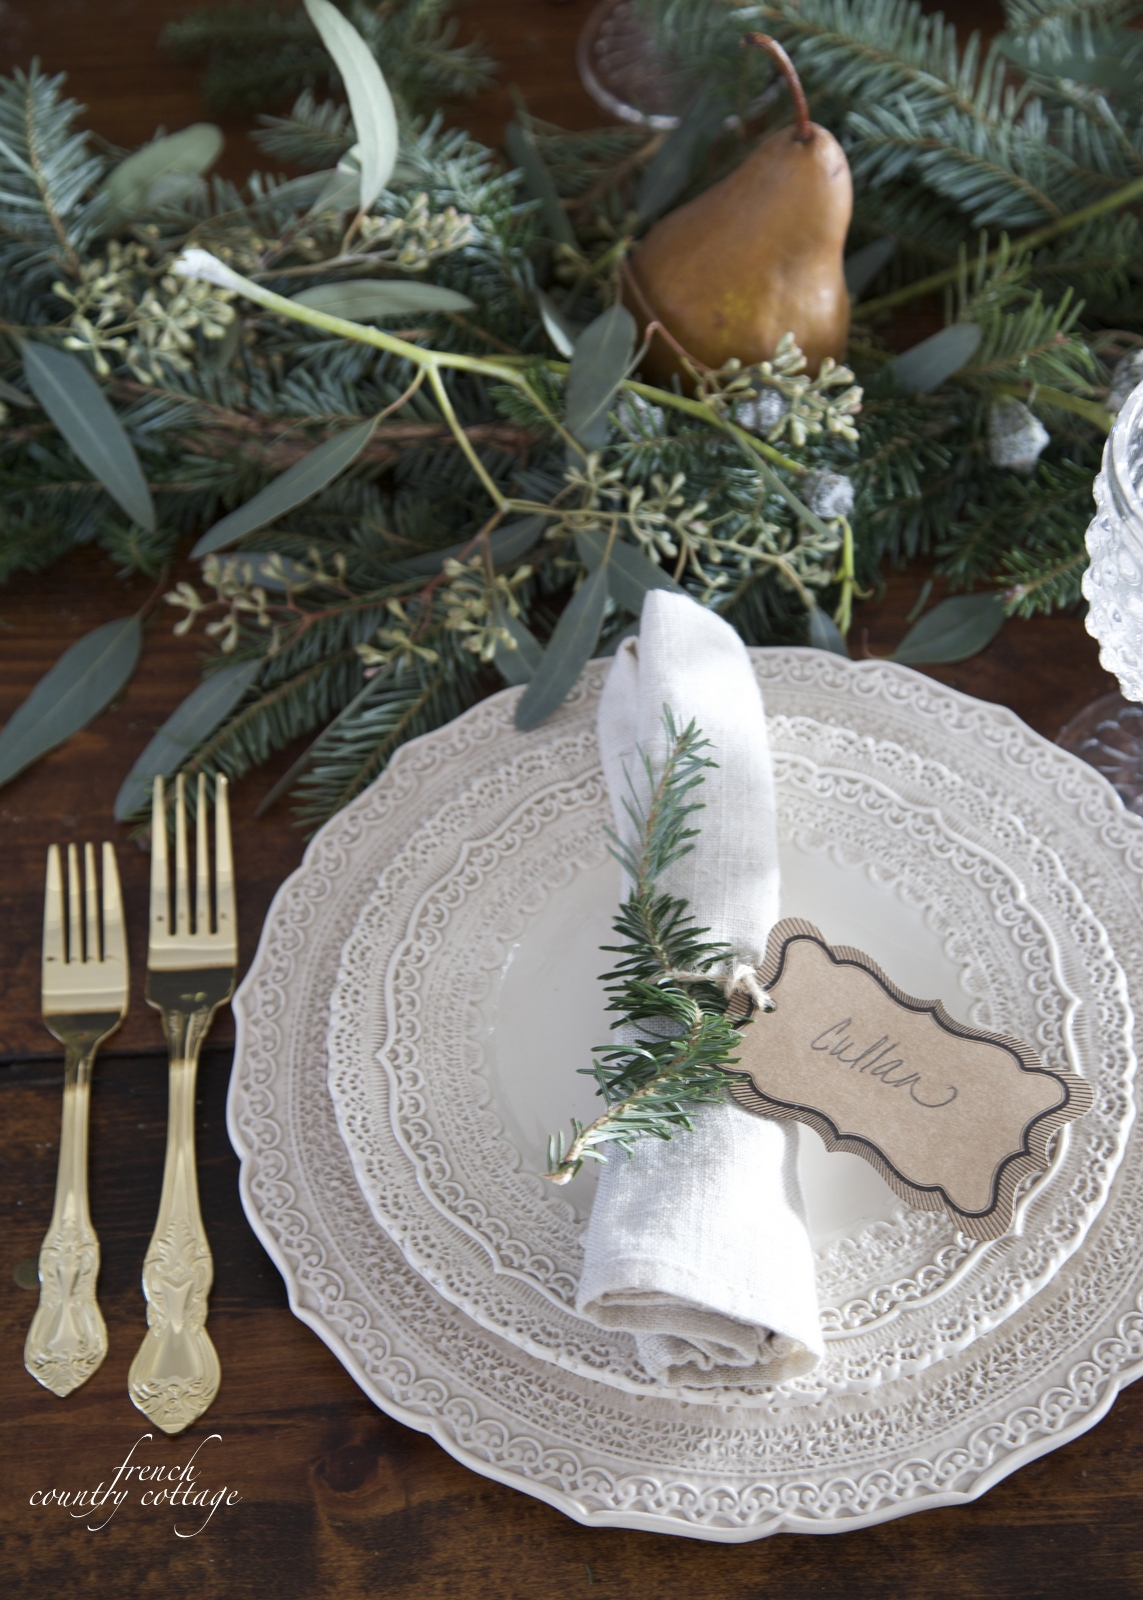 Courtney at french country cottage decorated the kitchen - French Country Cottage Christmas Home Holiday Decorating